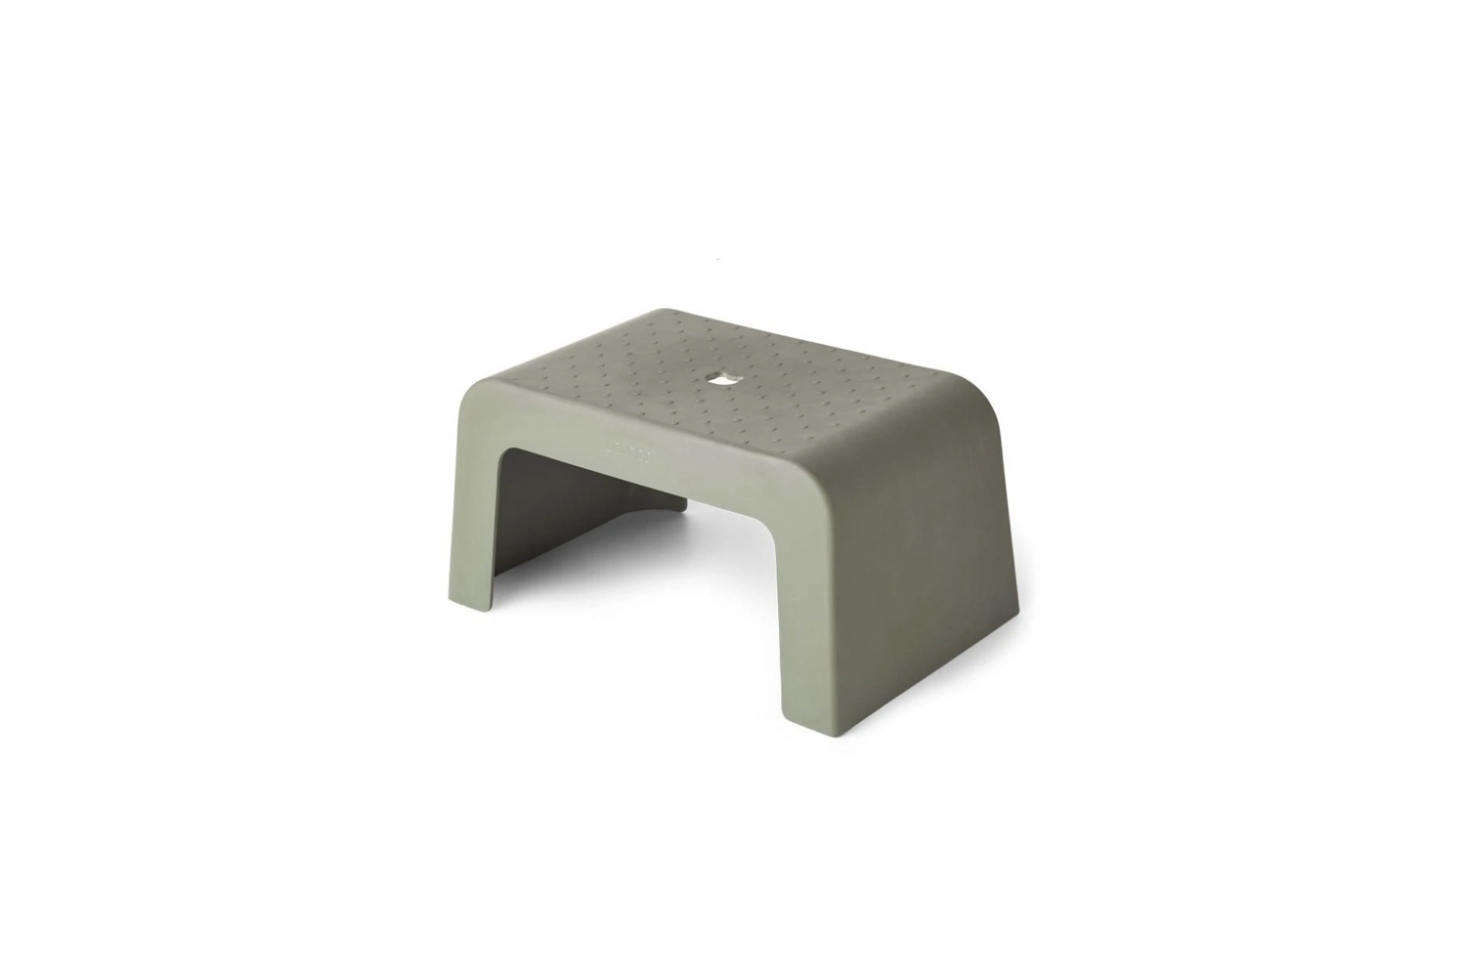 The Liewood Ulla Step Stool, shown in Green Faune, is made of a blend of bamboo fiber and melamine; $53.95 at Scandiborn. The stool is also available in Mustard and Dumbo Grey.